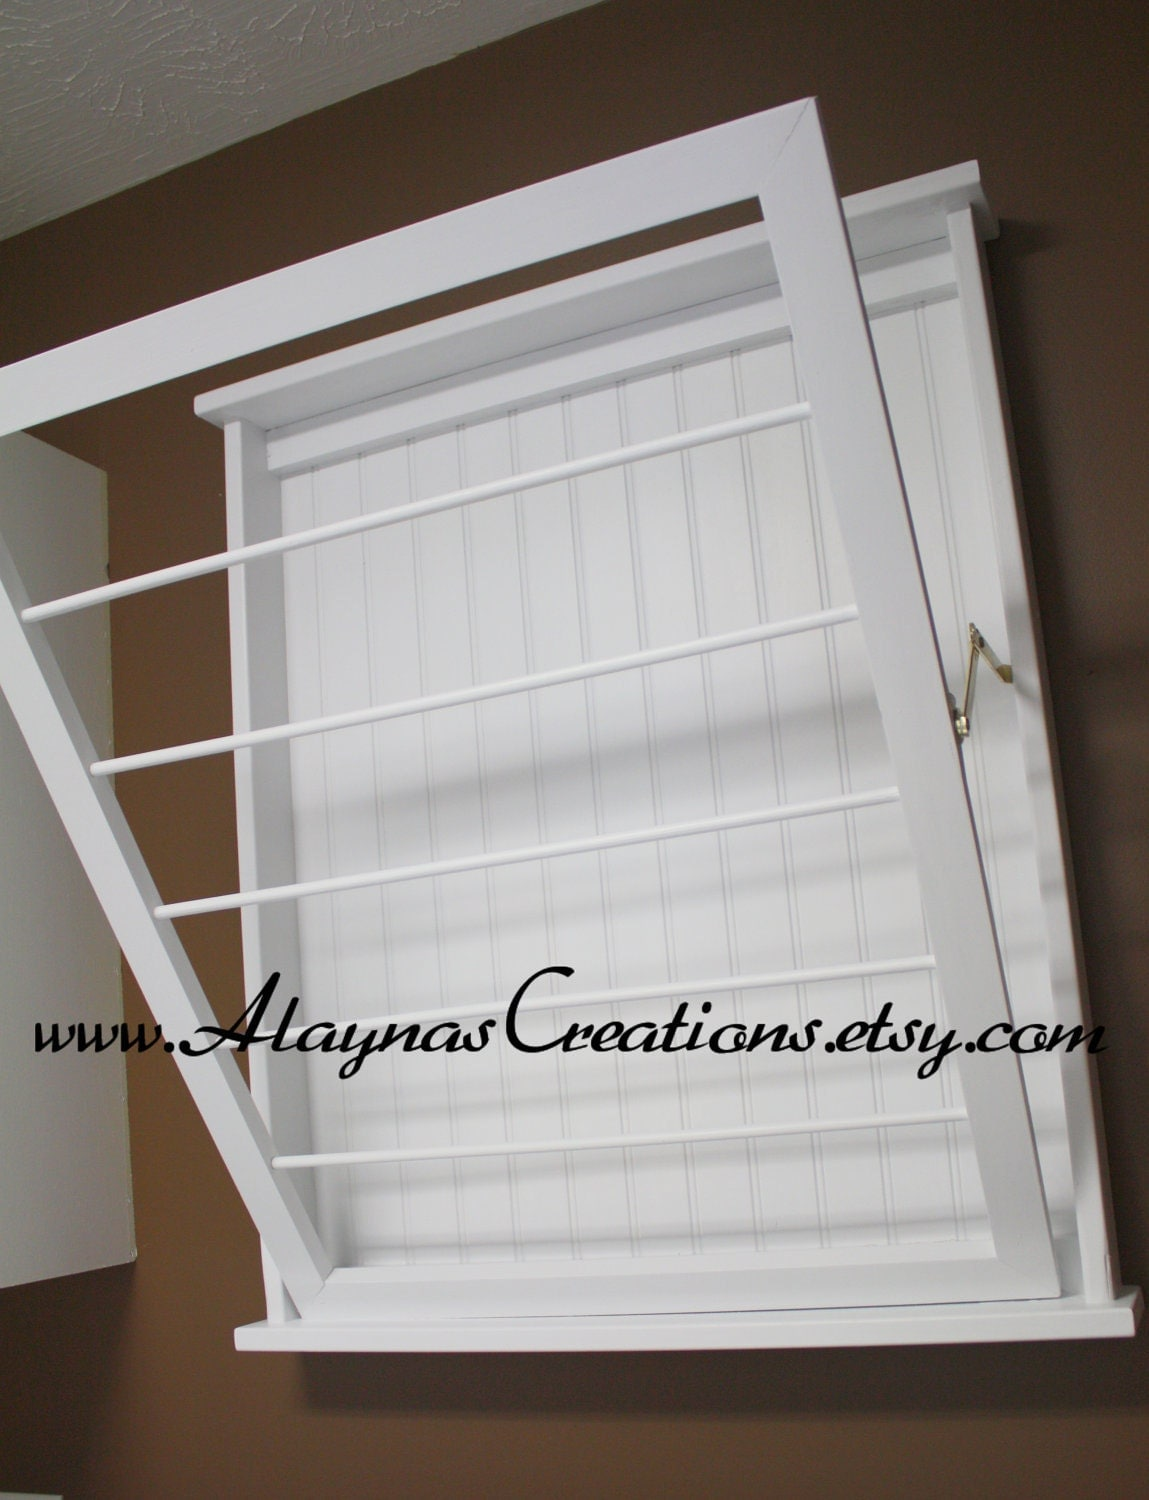 Laundry Room Wall Mount Drying Rack Simple Home Decoration